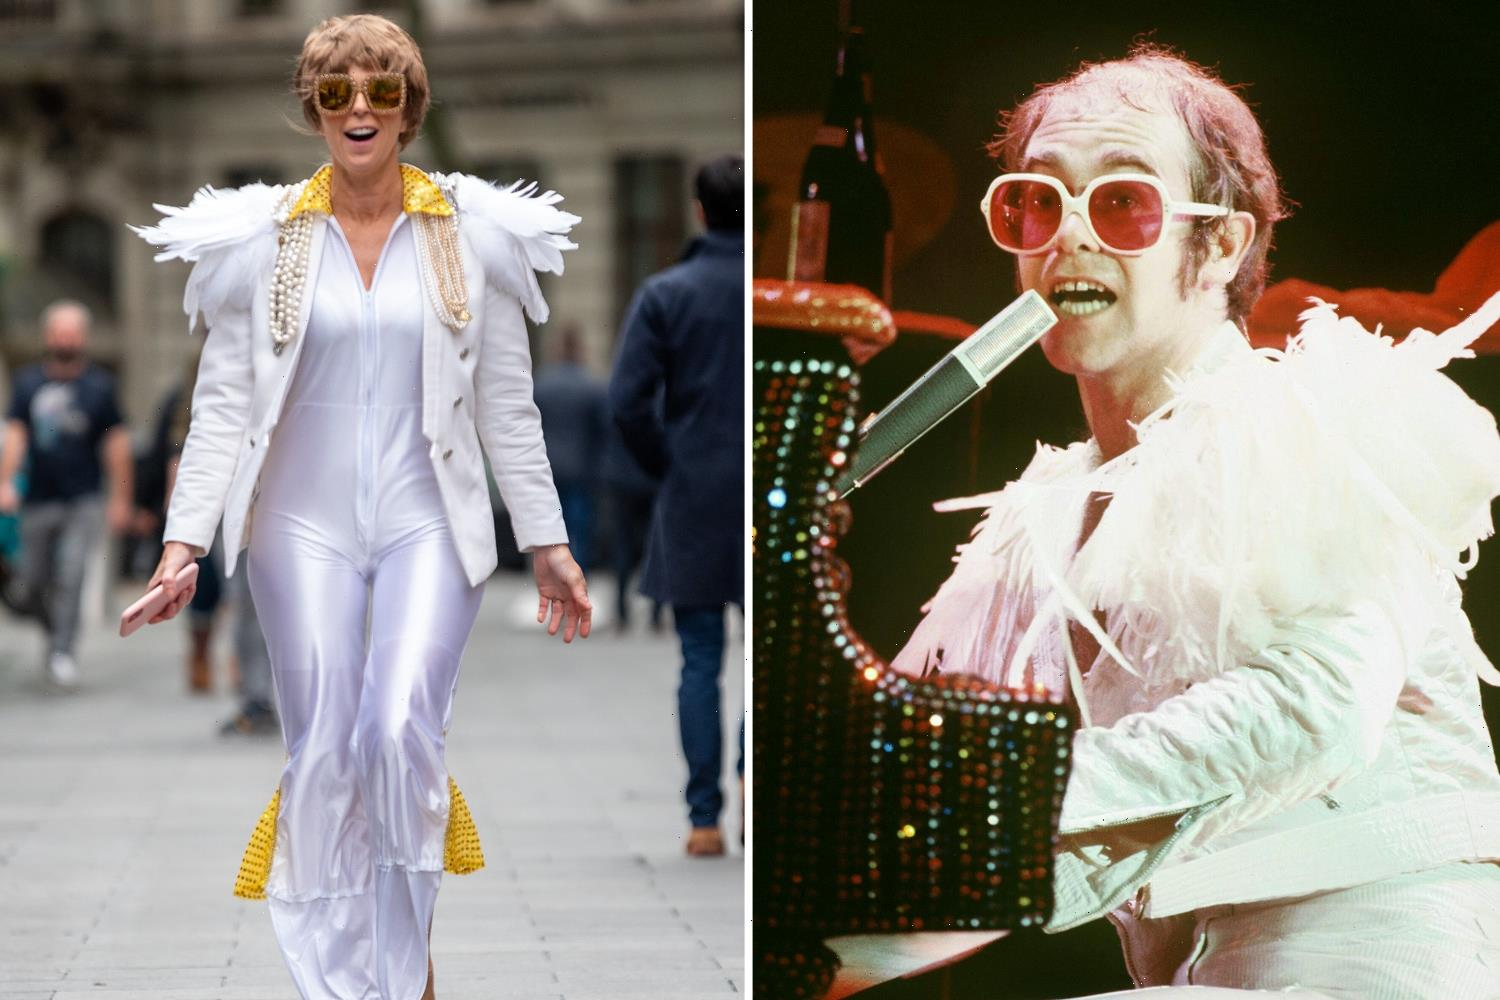 TV star is unrecognisable in fancy dress as Elton John – but can you guess who it is?